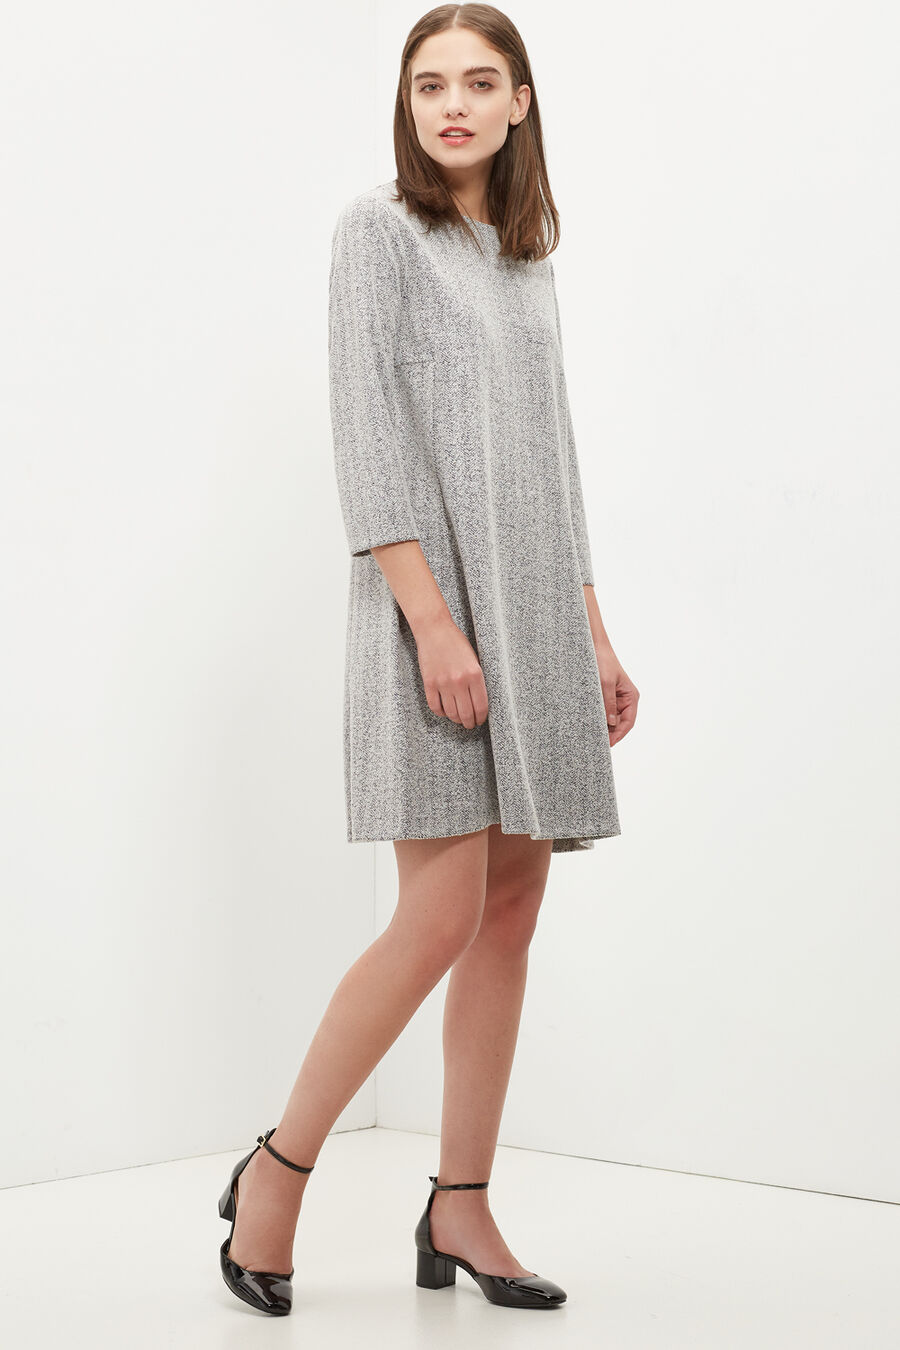 Herringbone dress